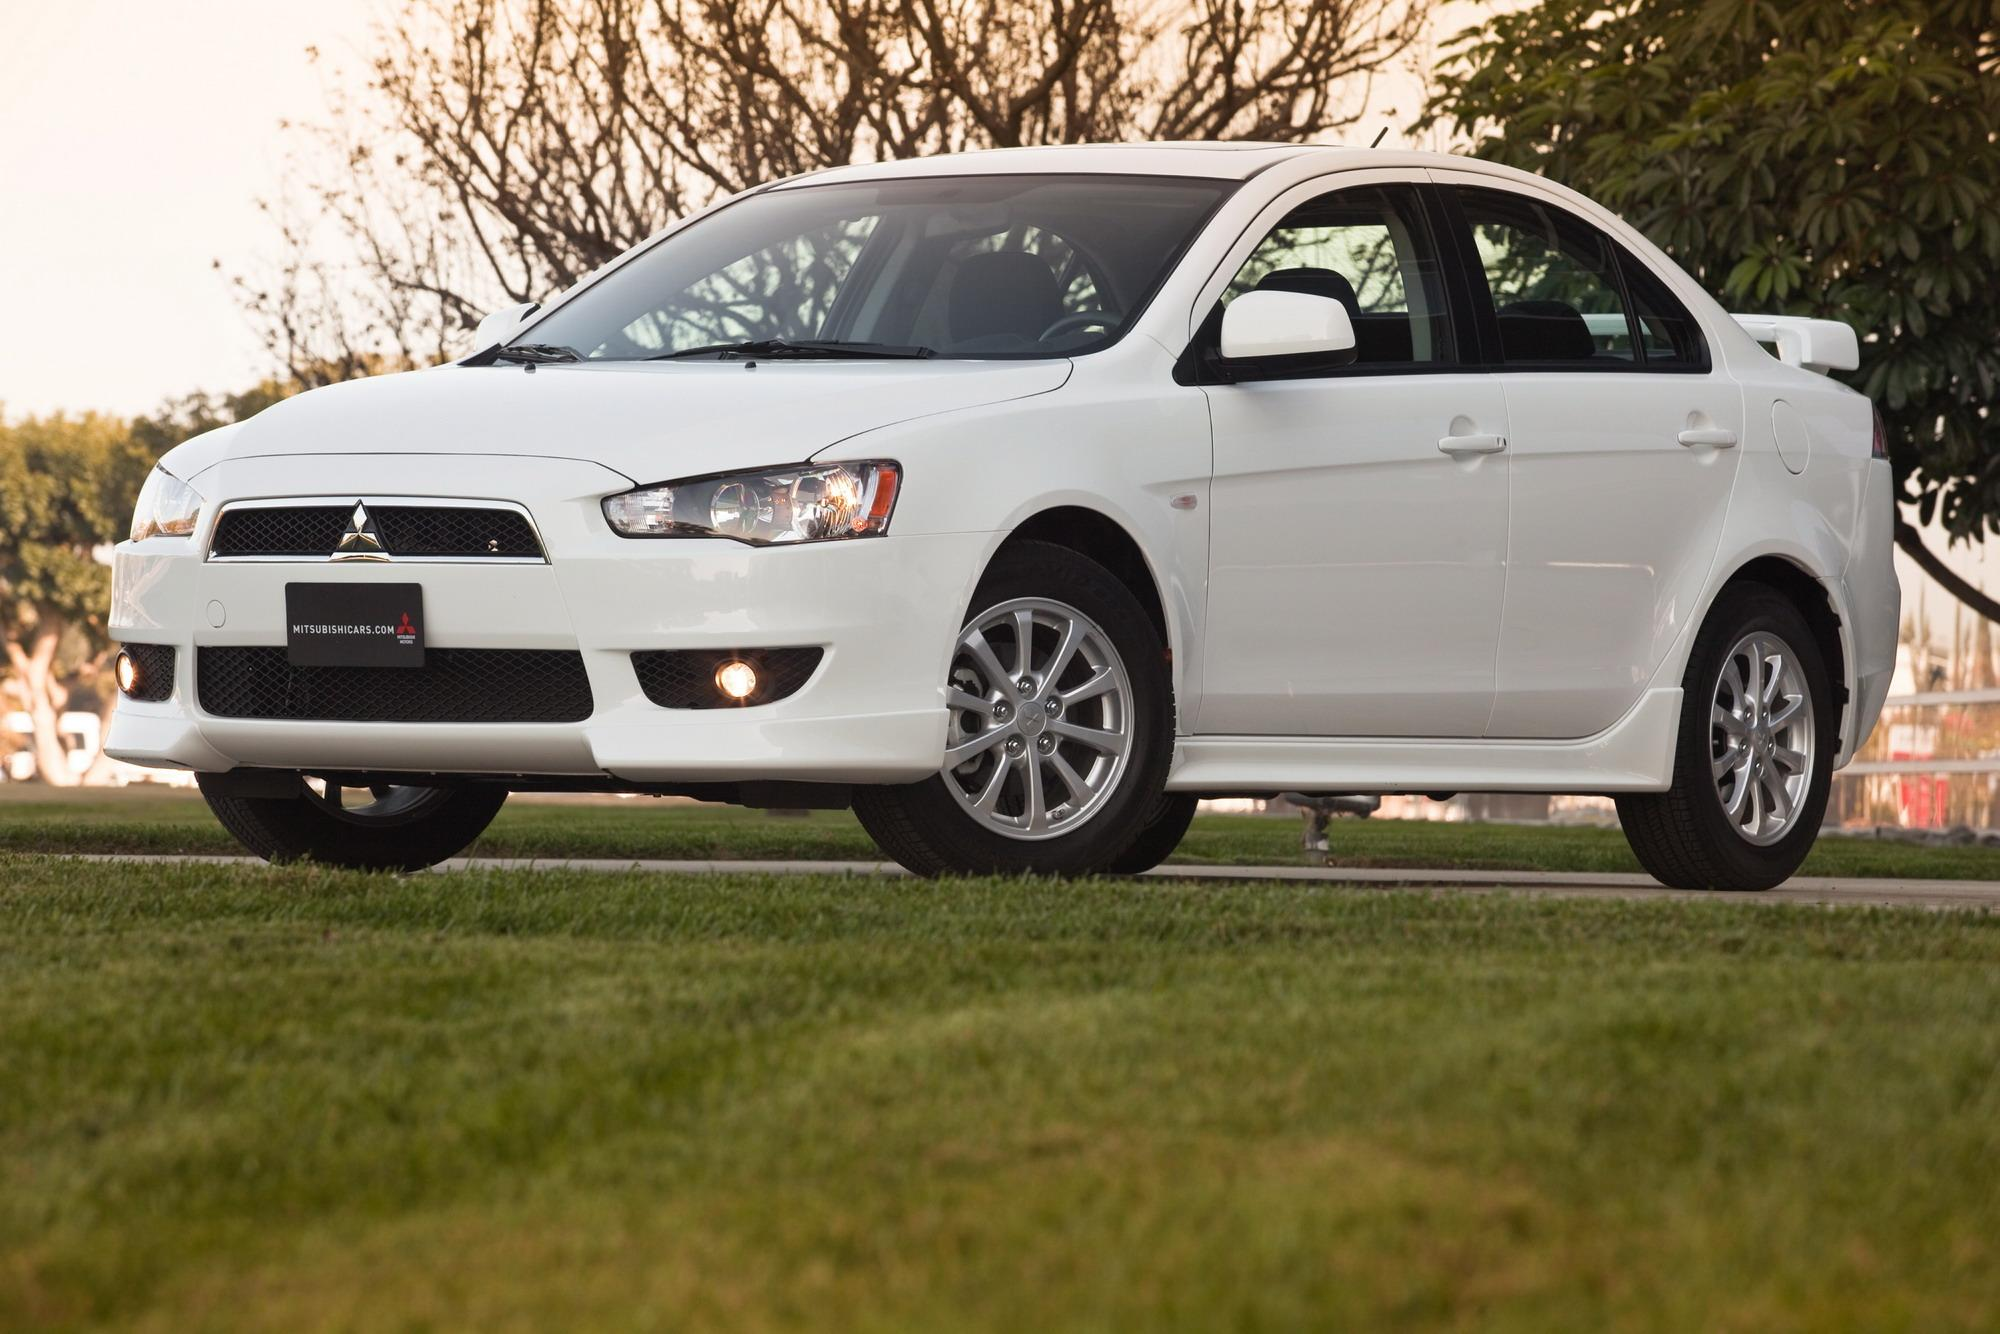 Good 2010 Mitsubishi Lancer | Top Speed. »